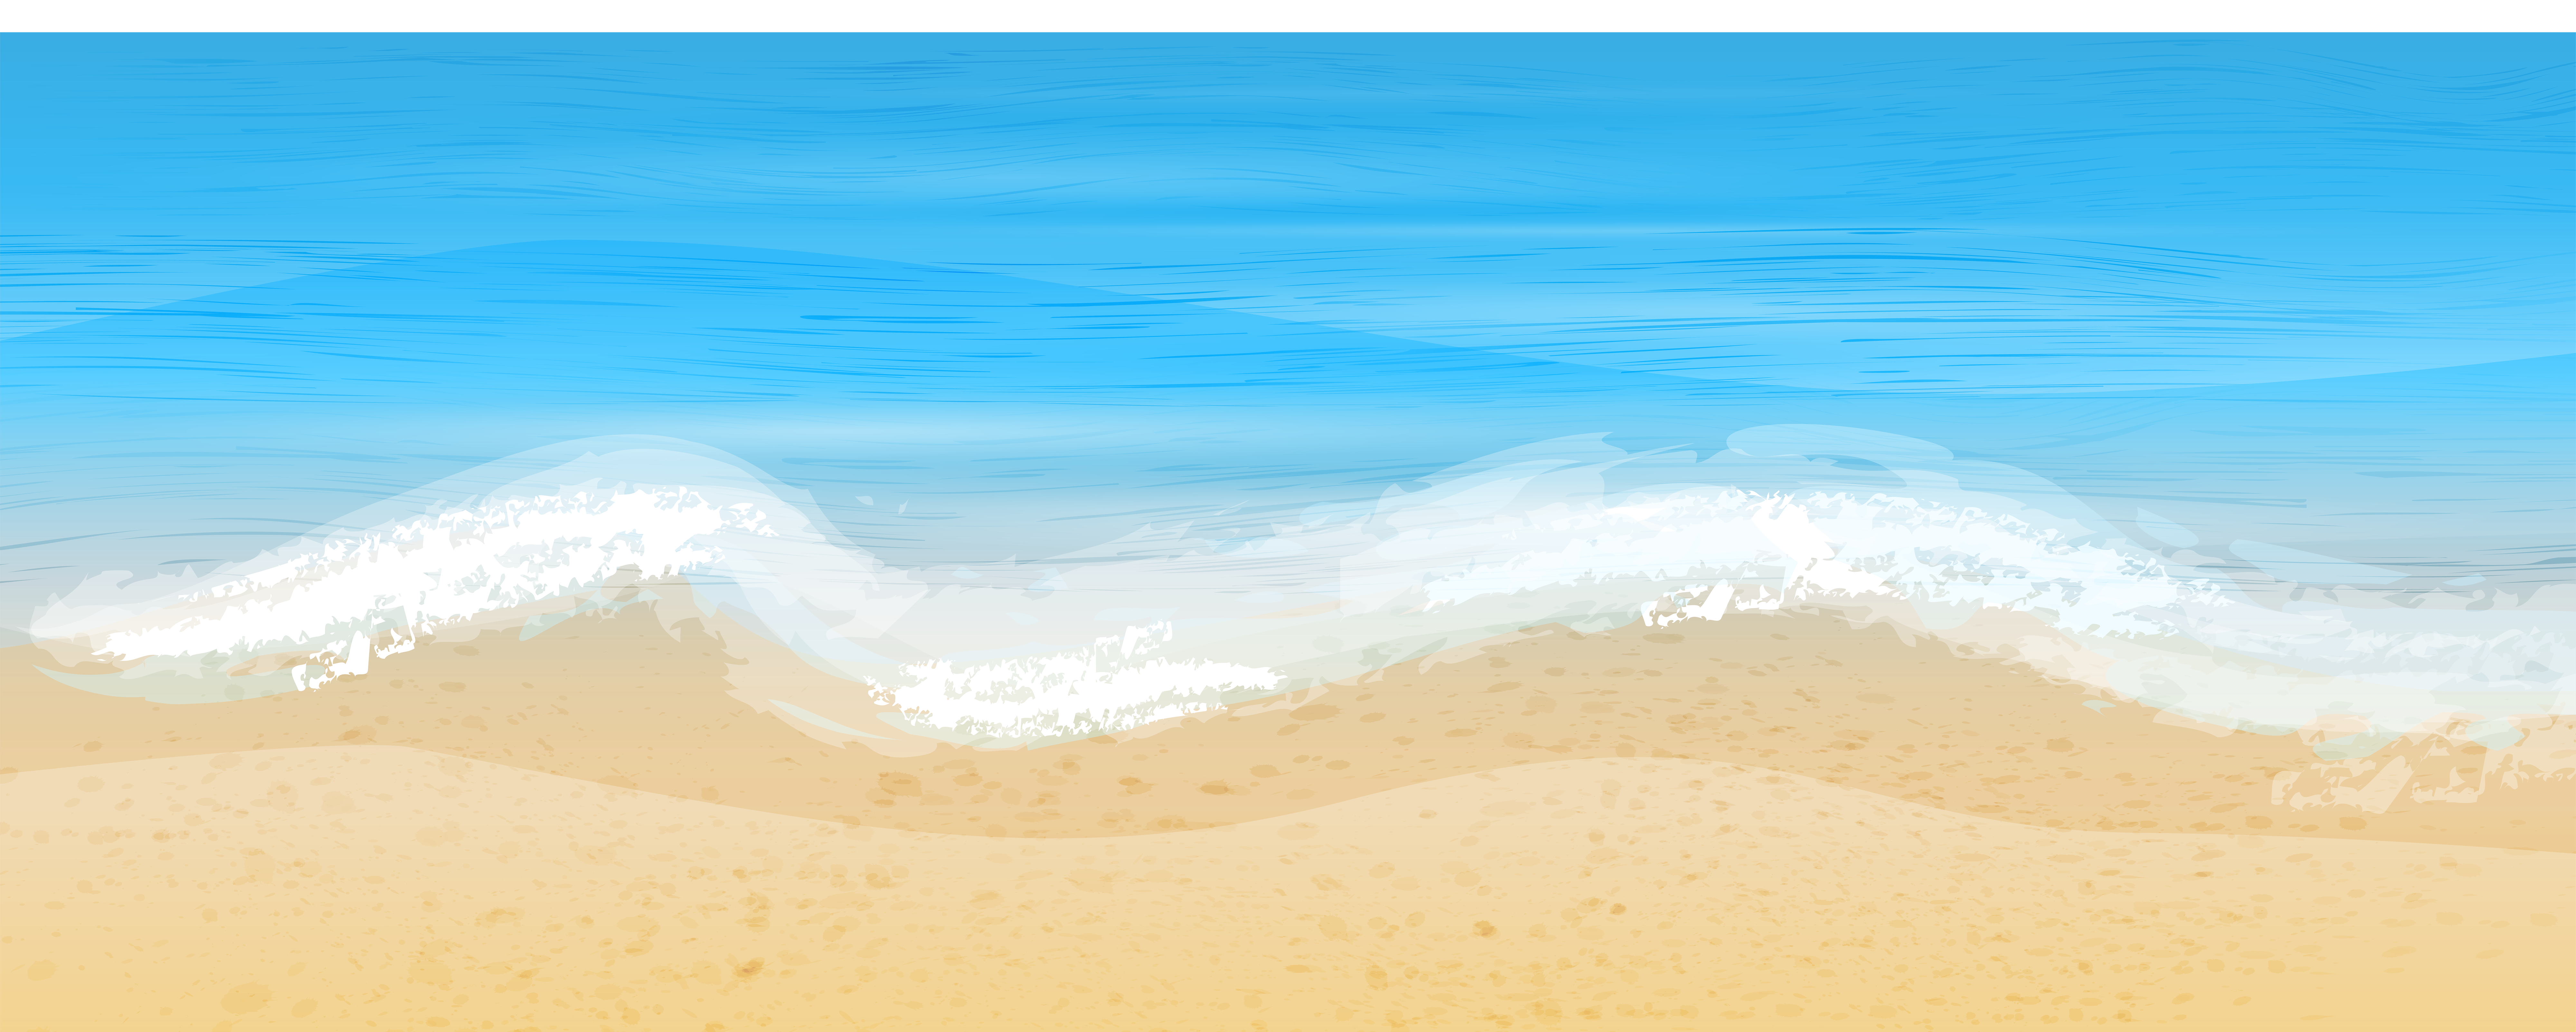 Sea and Sand Free PNG Clip Art Image.